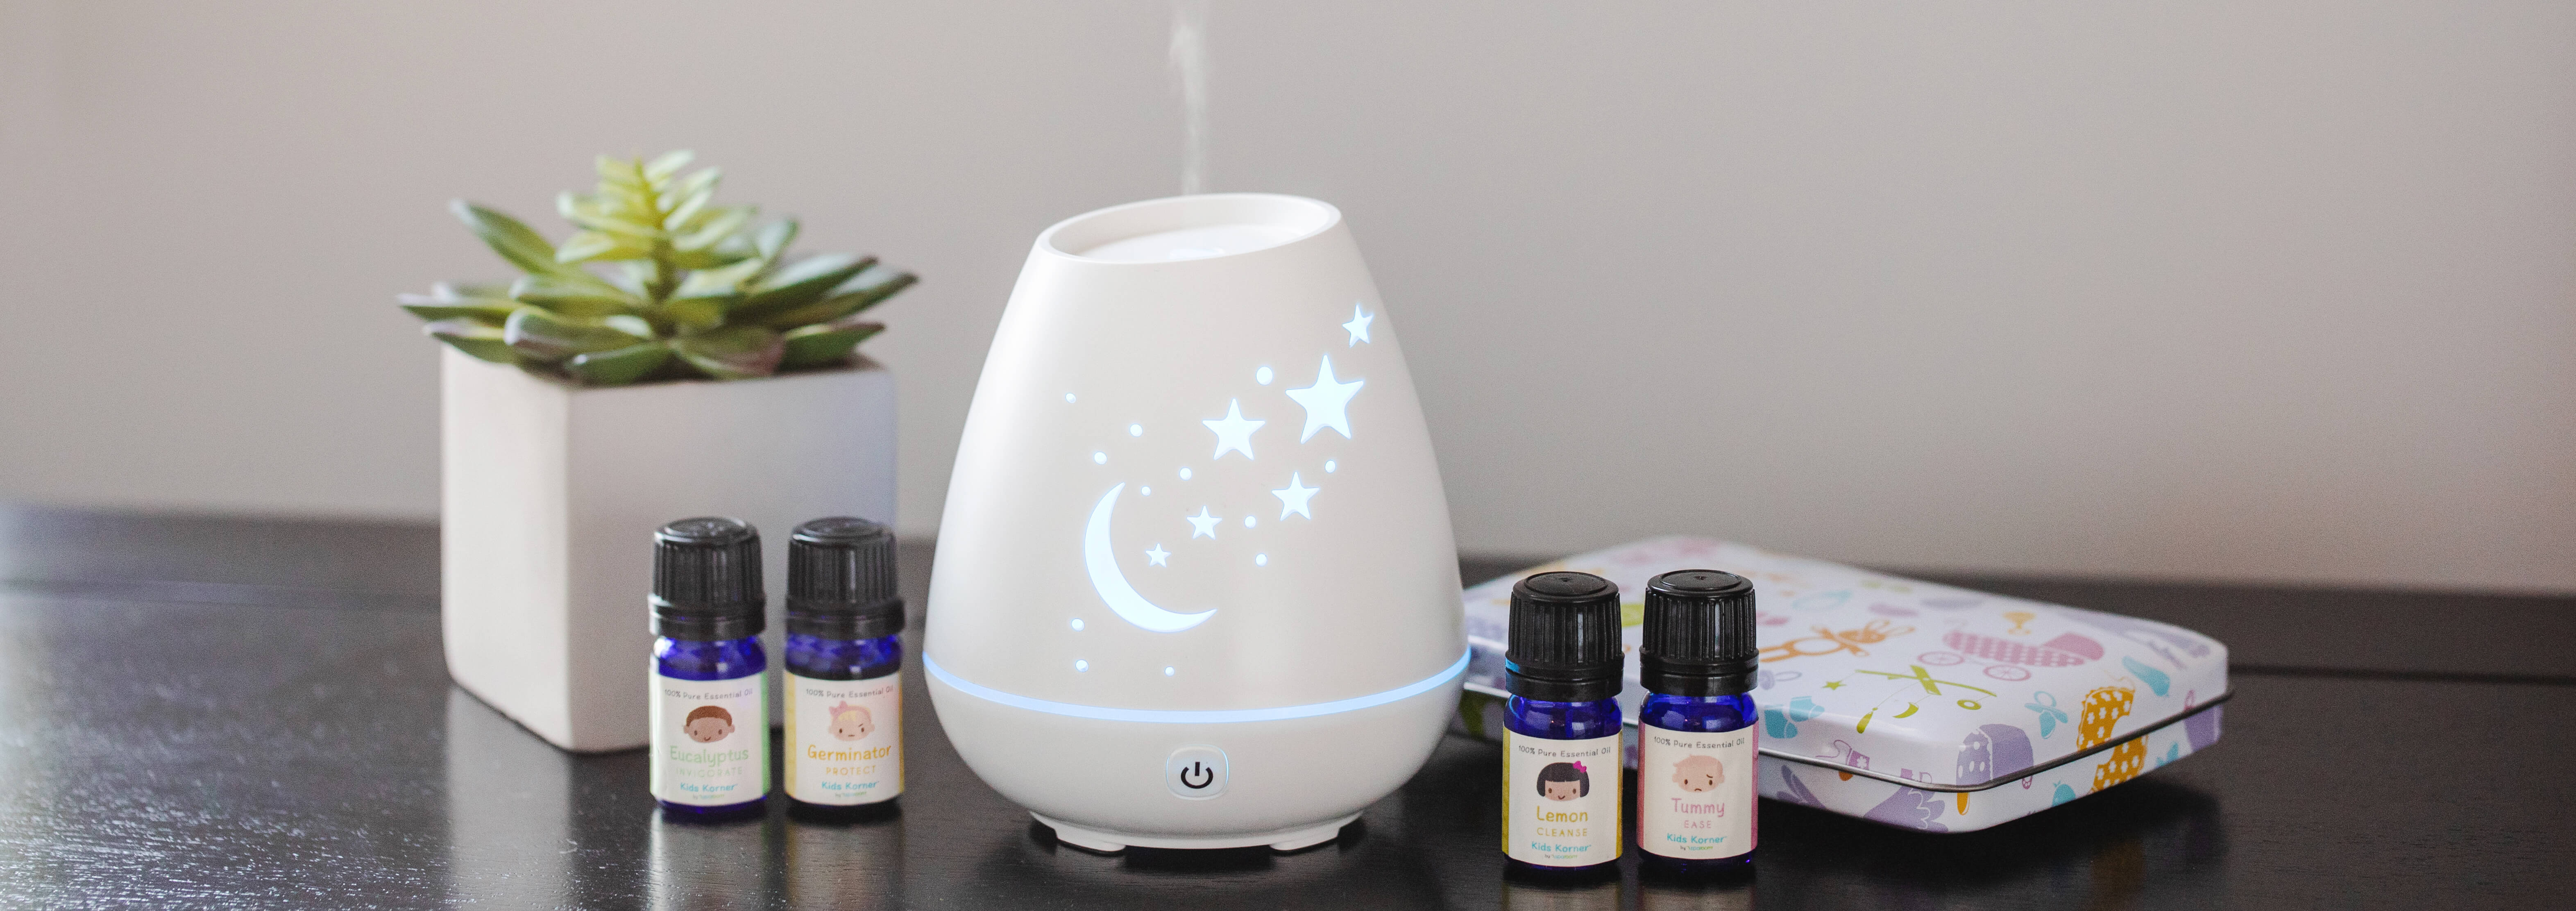 Kids Friendly Essential Oil Diffusing Collage